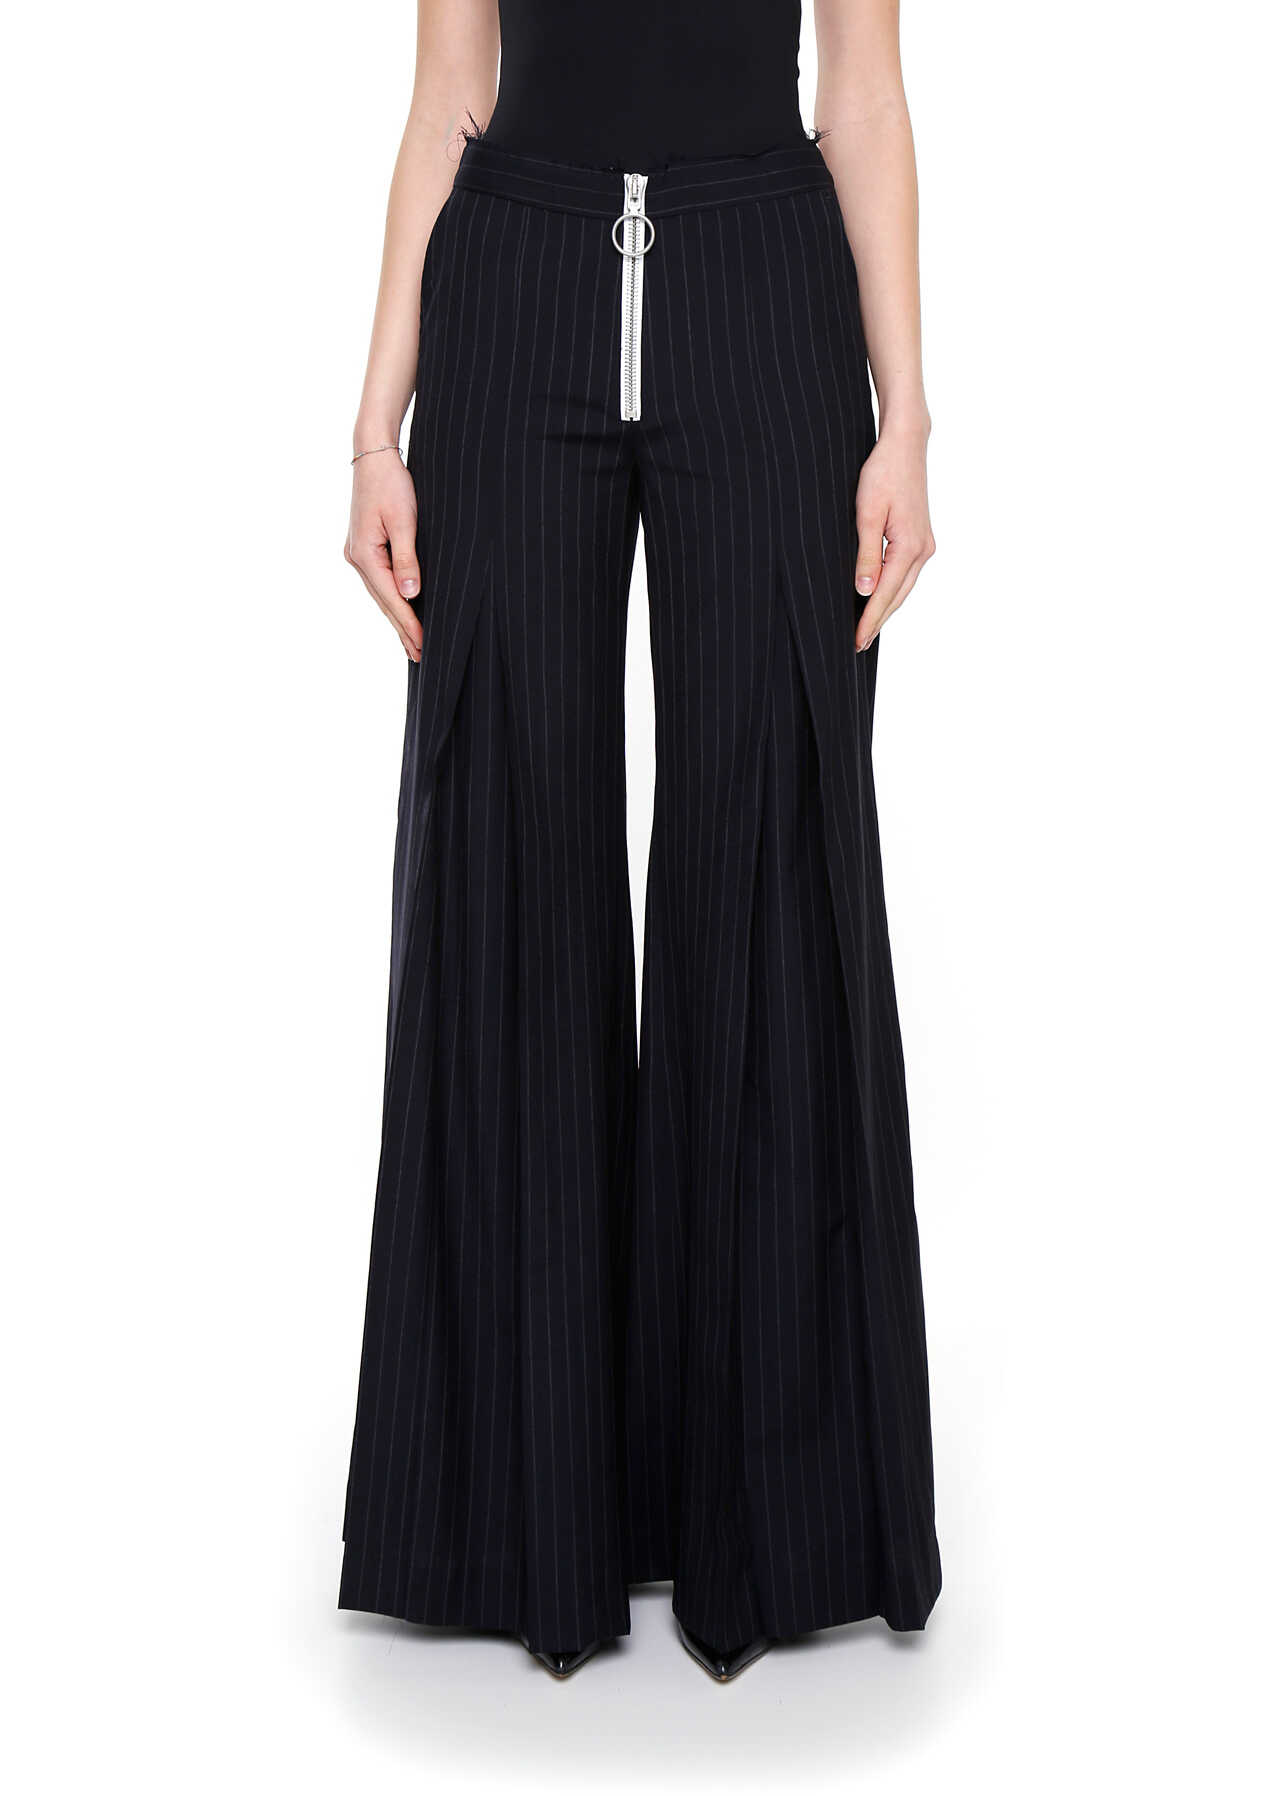 Off-White Pinstriped Trousers DARK BLUE